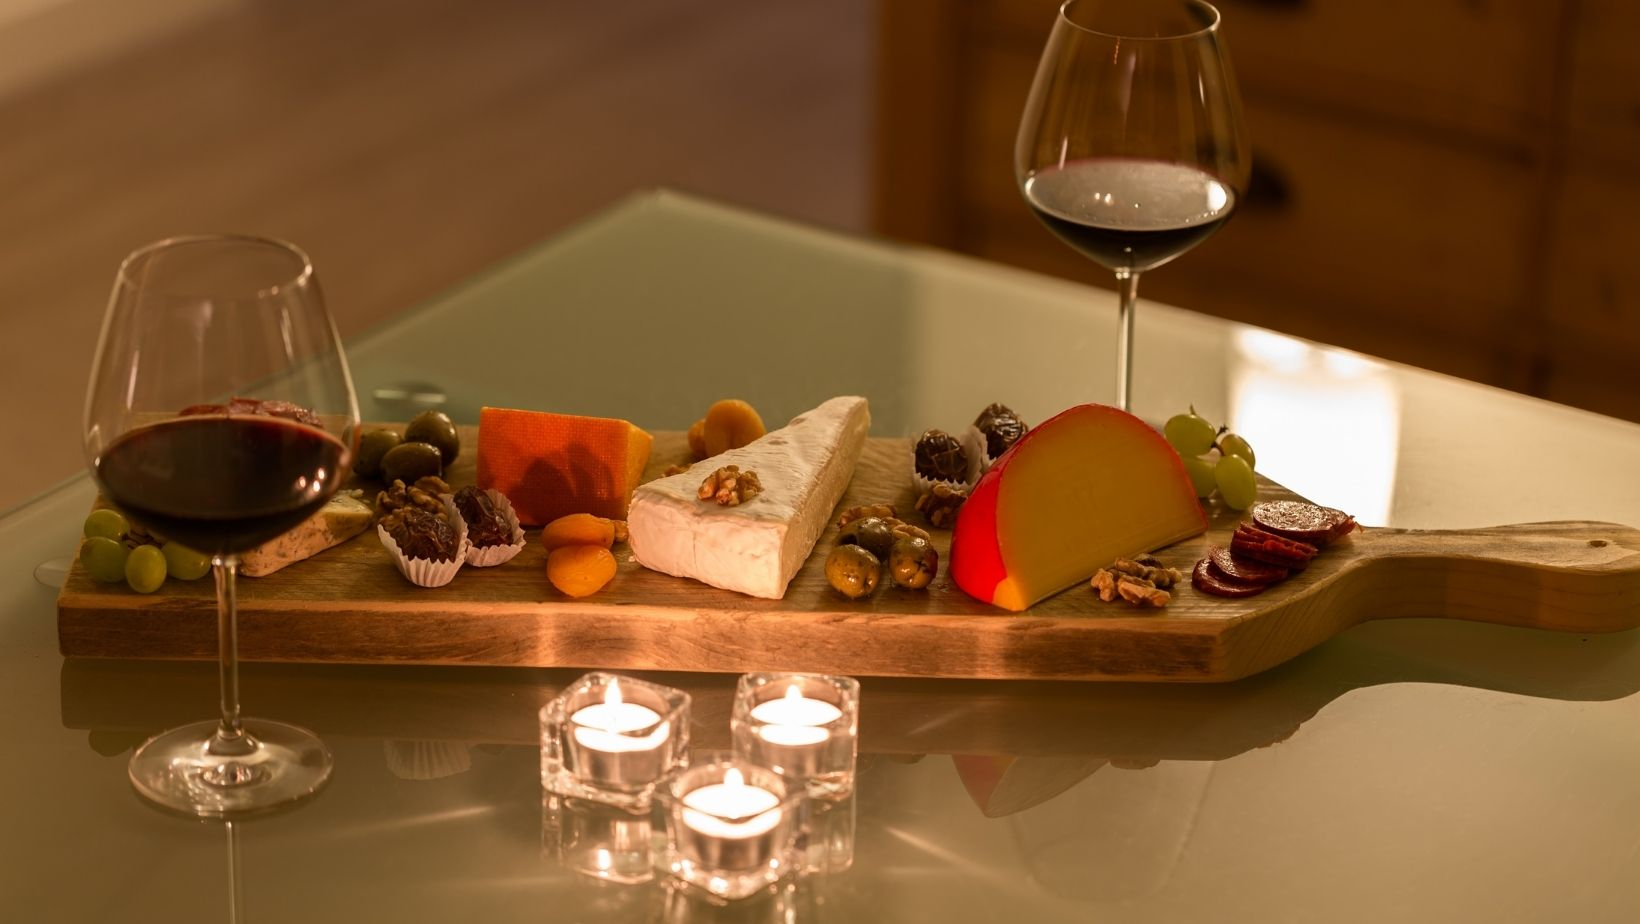 A tray of cheese with a glass of wine is a great way to have a simple date night with your co-parent.